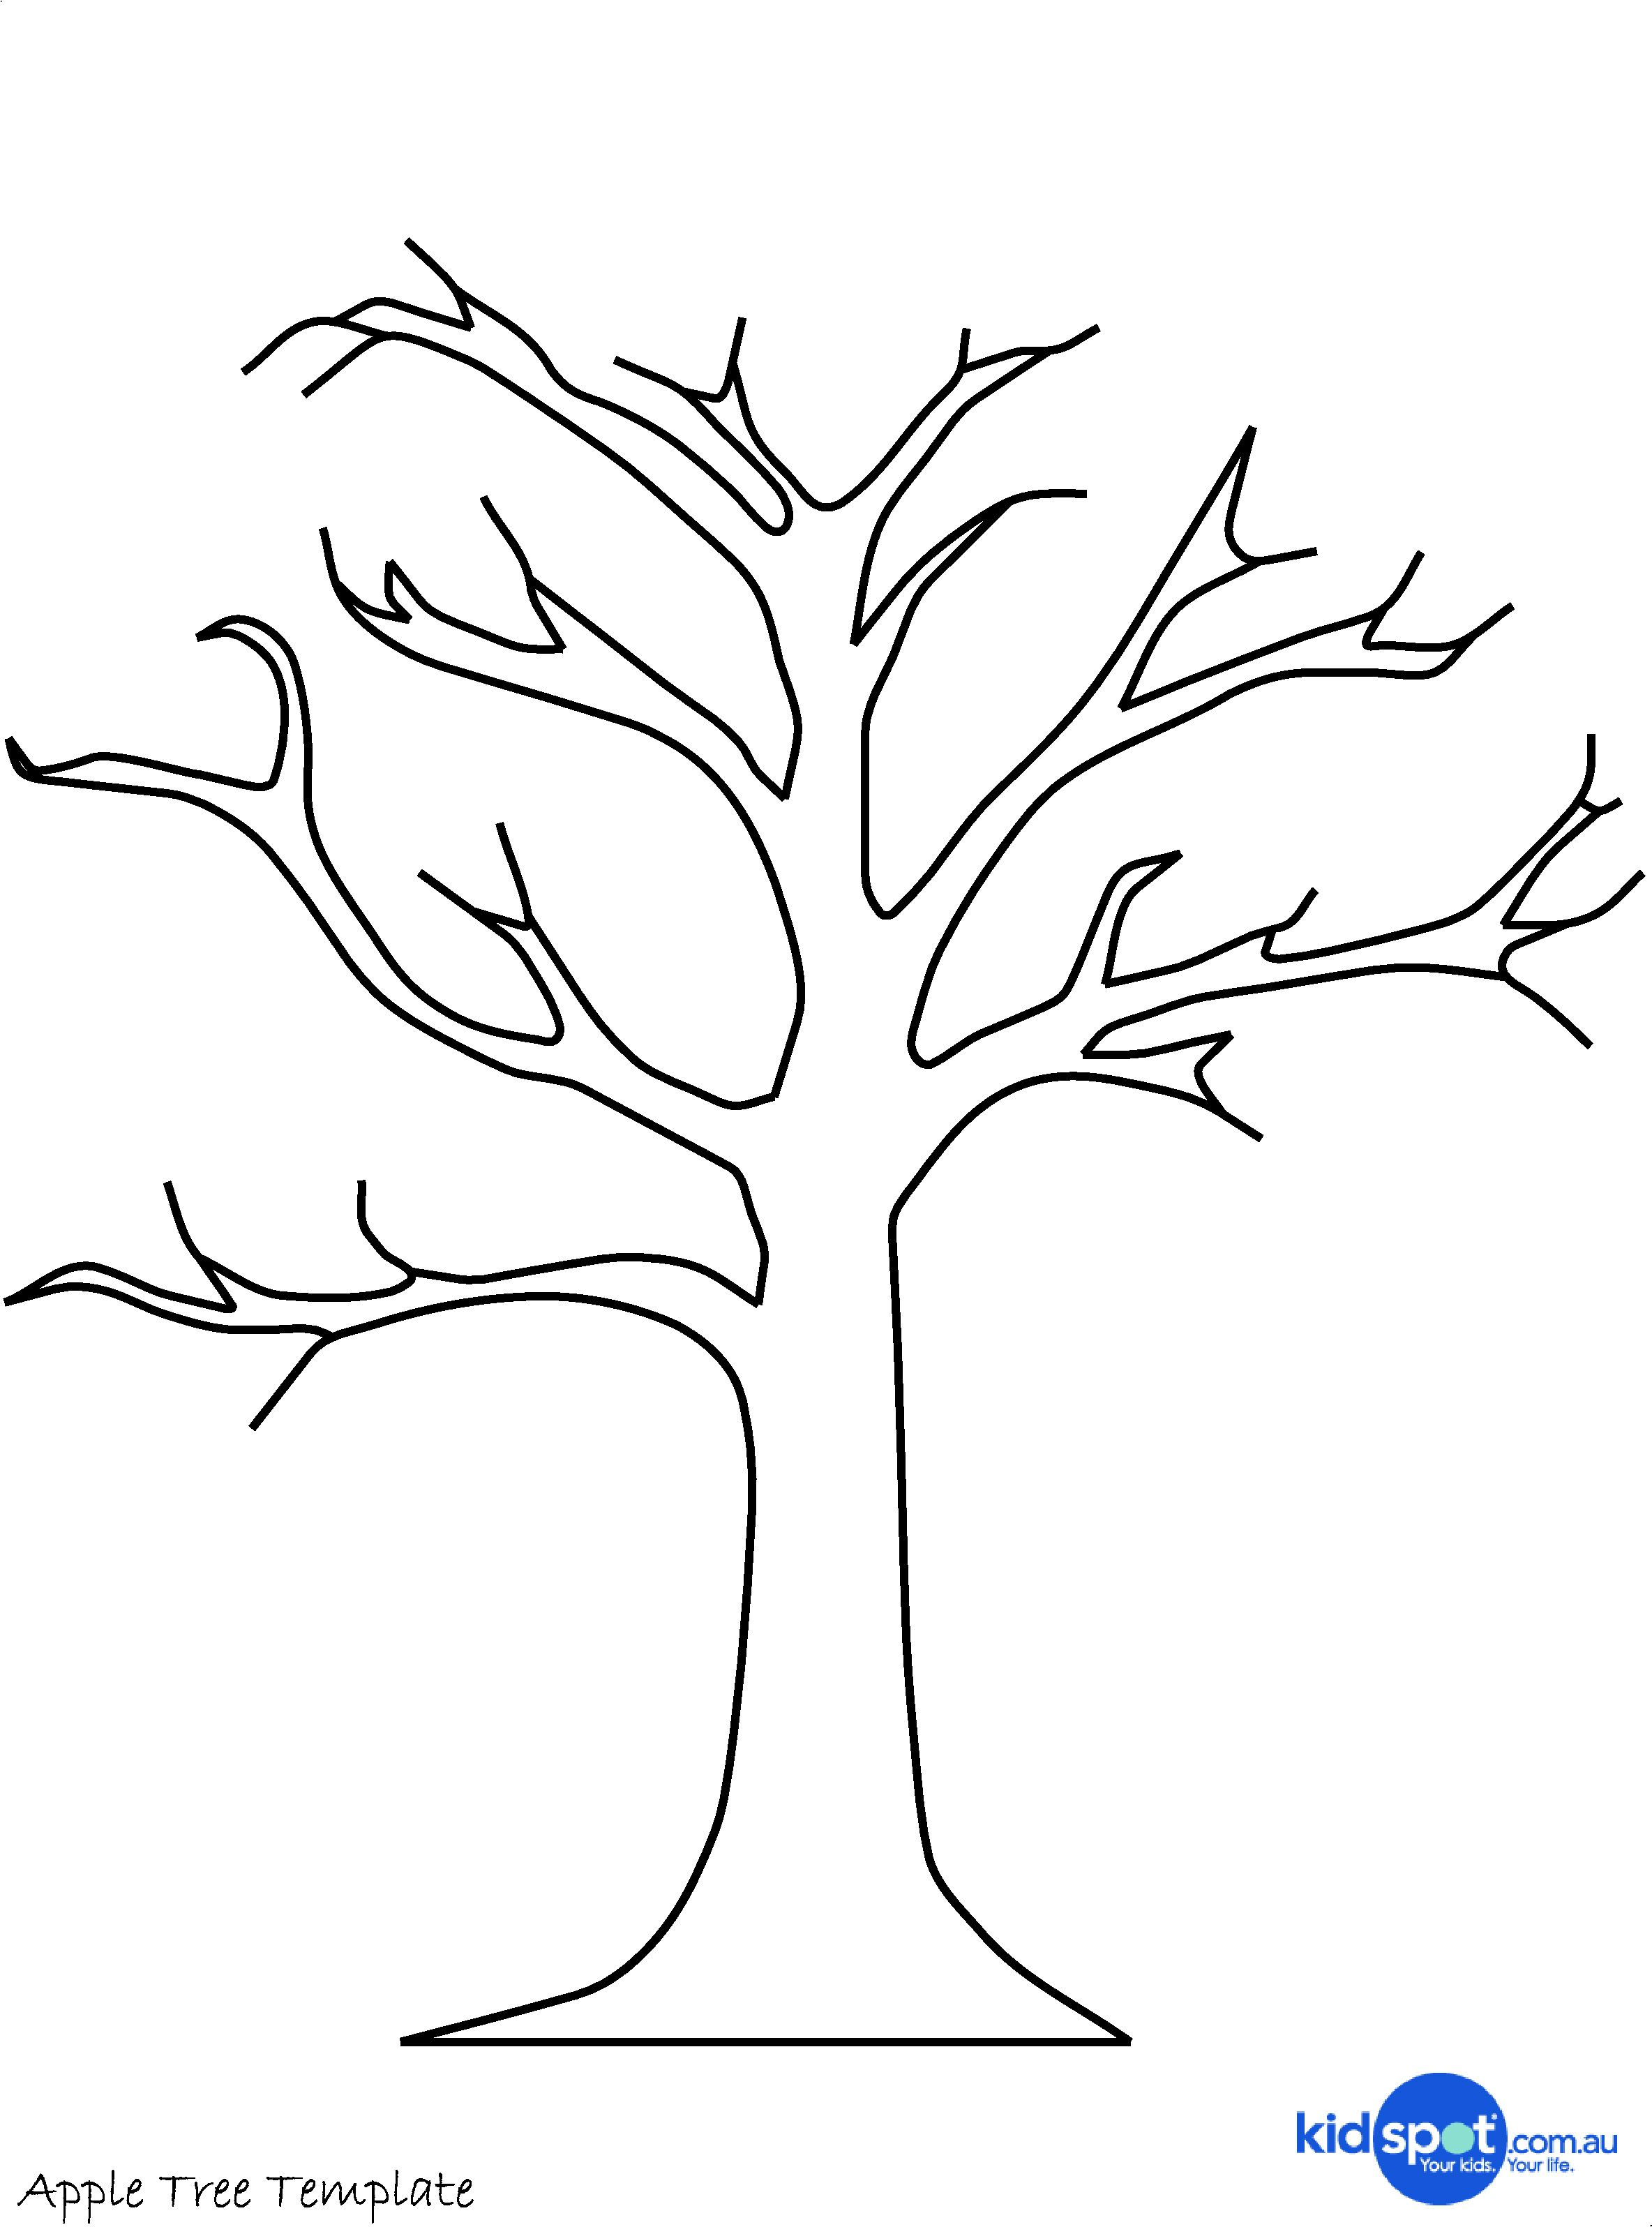 Free Stencil Of A Tree Outline, Download Free Clip Art, Free Clip